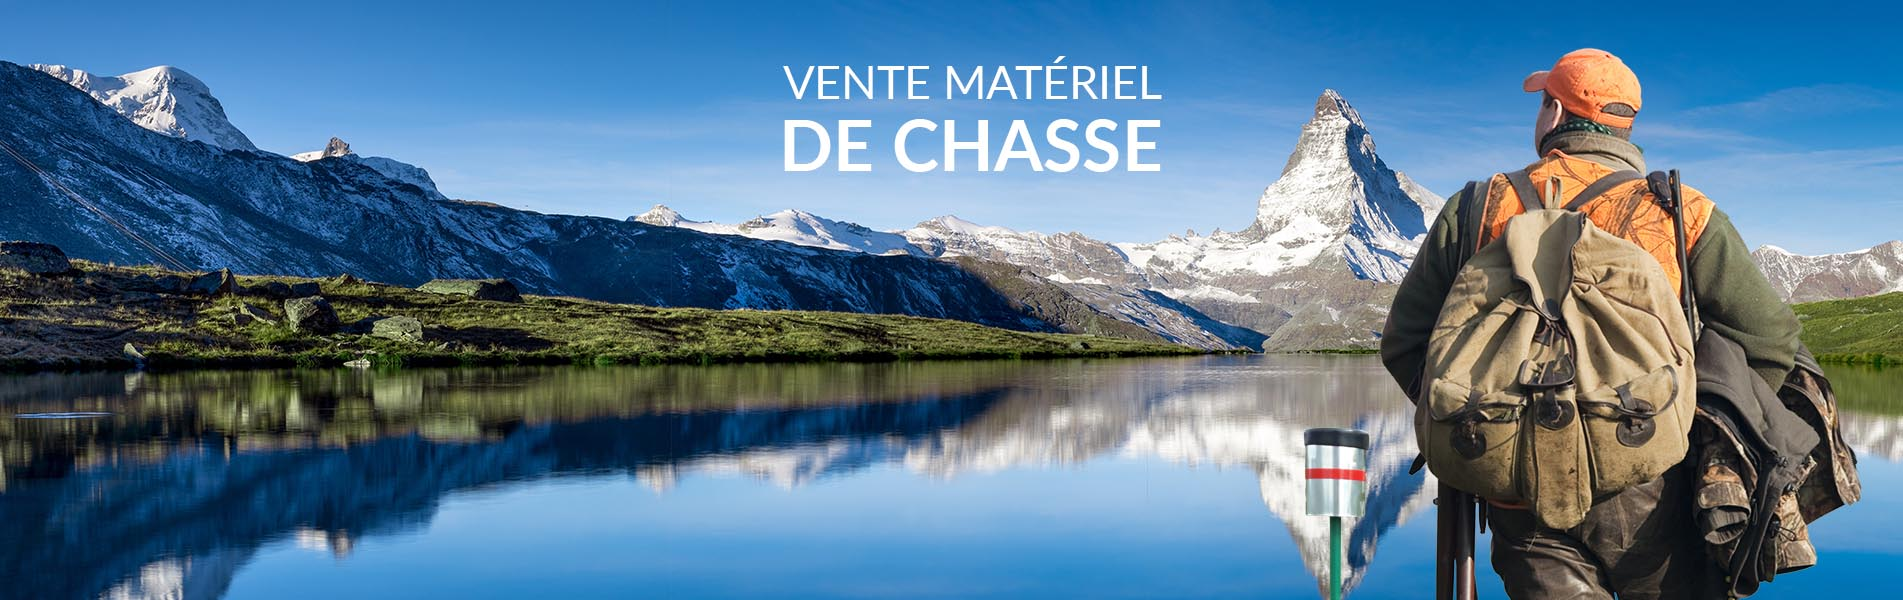 Montage-page-ecommerce-chasse-2